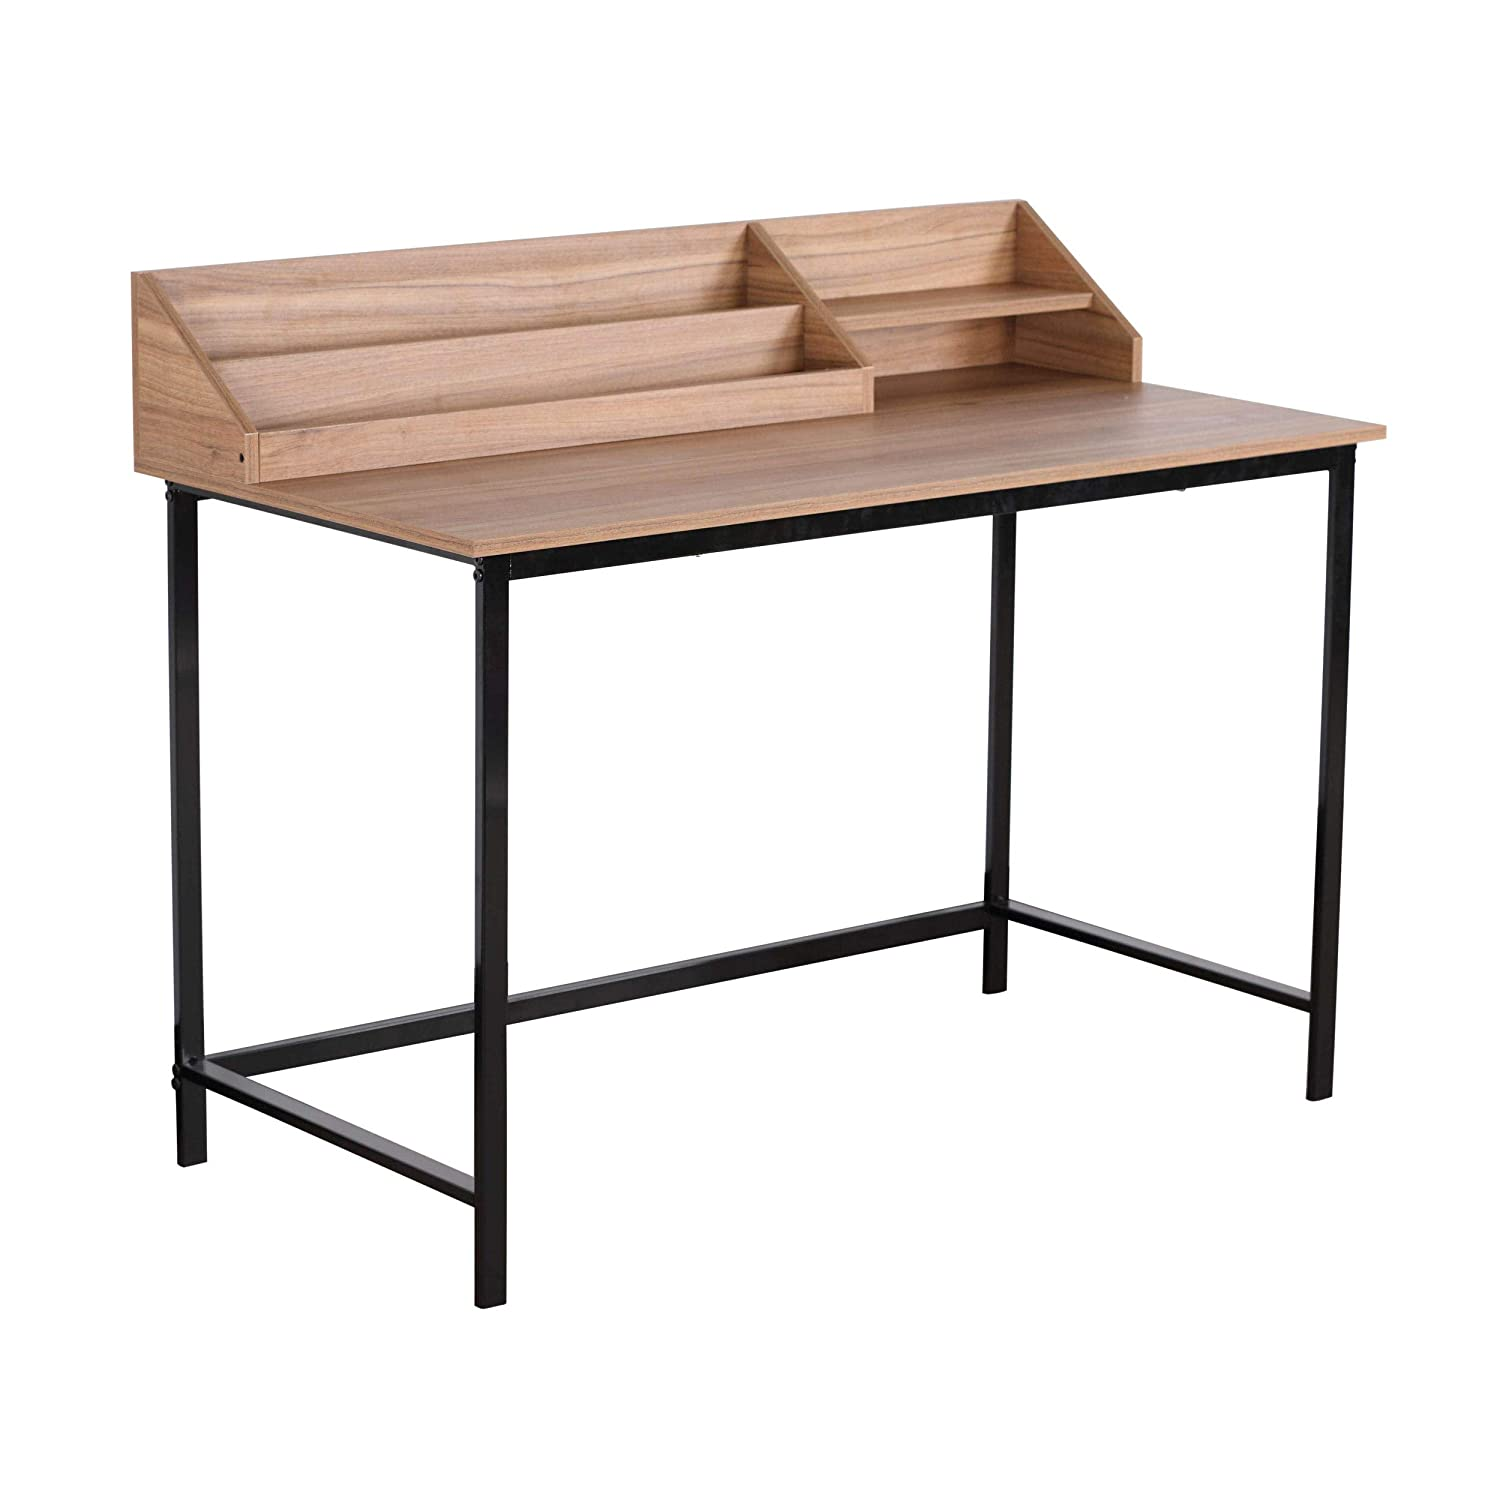 Stupendous Moustache Wood Writing Desk Reading Table Workstation With Hutch Desktop Tray Organizer Storage Rack For Computer Home Office School Study Interior Design Ideas Inesswwsoteloinfo